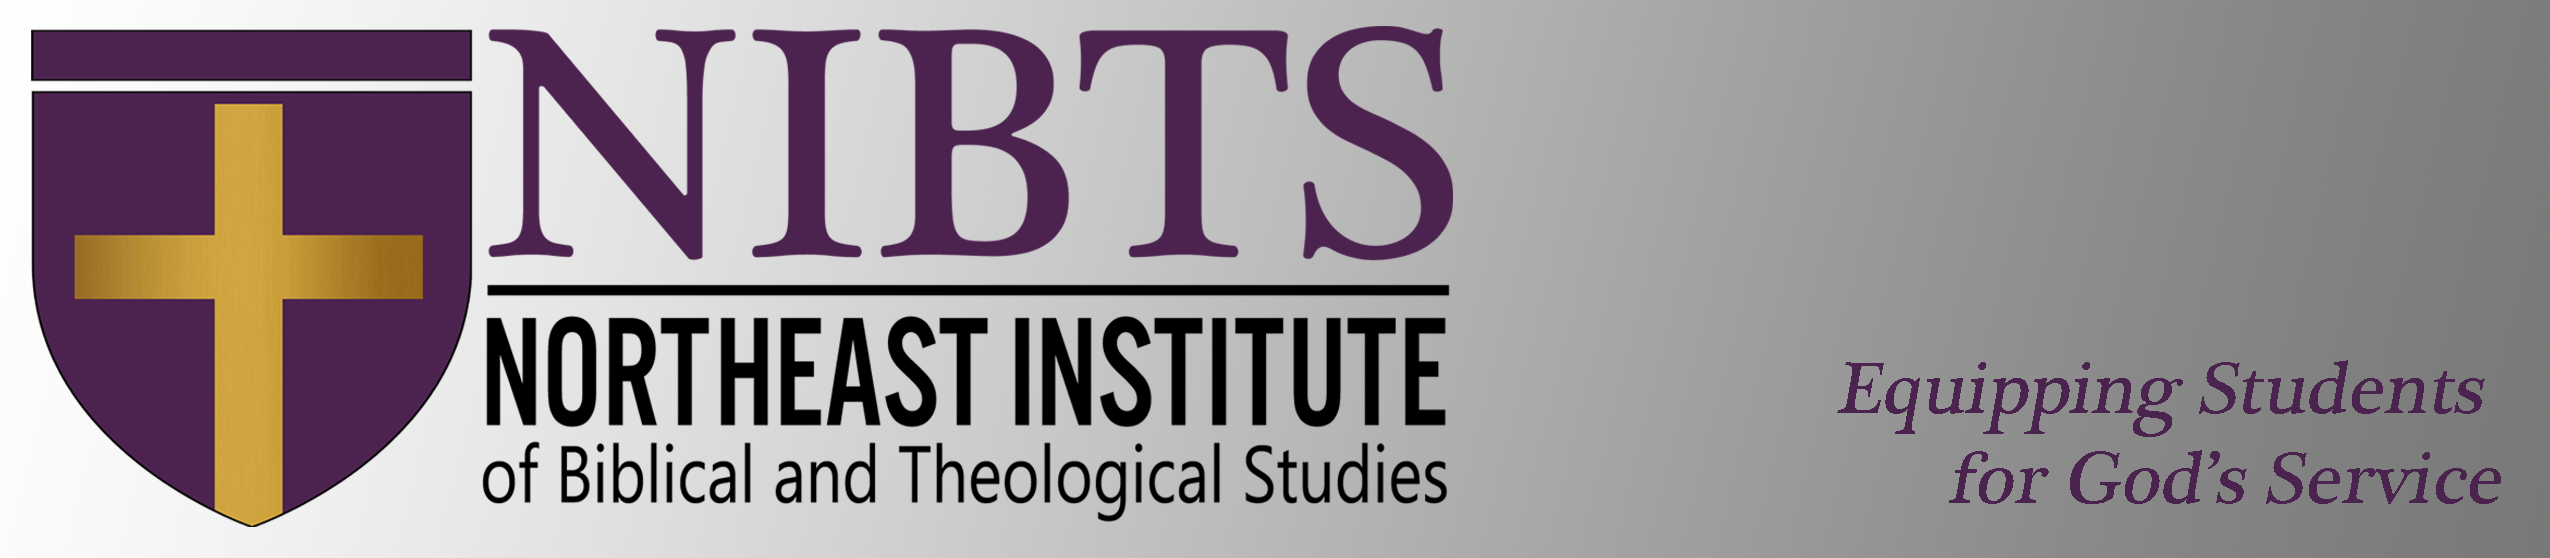 Northeast Institute of Biblical and Theological Studies